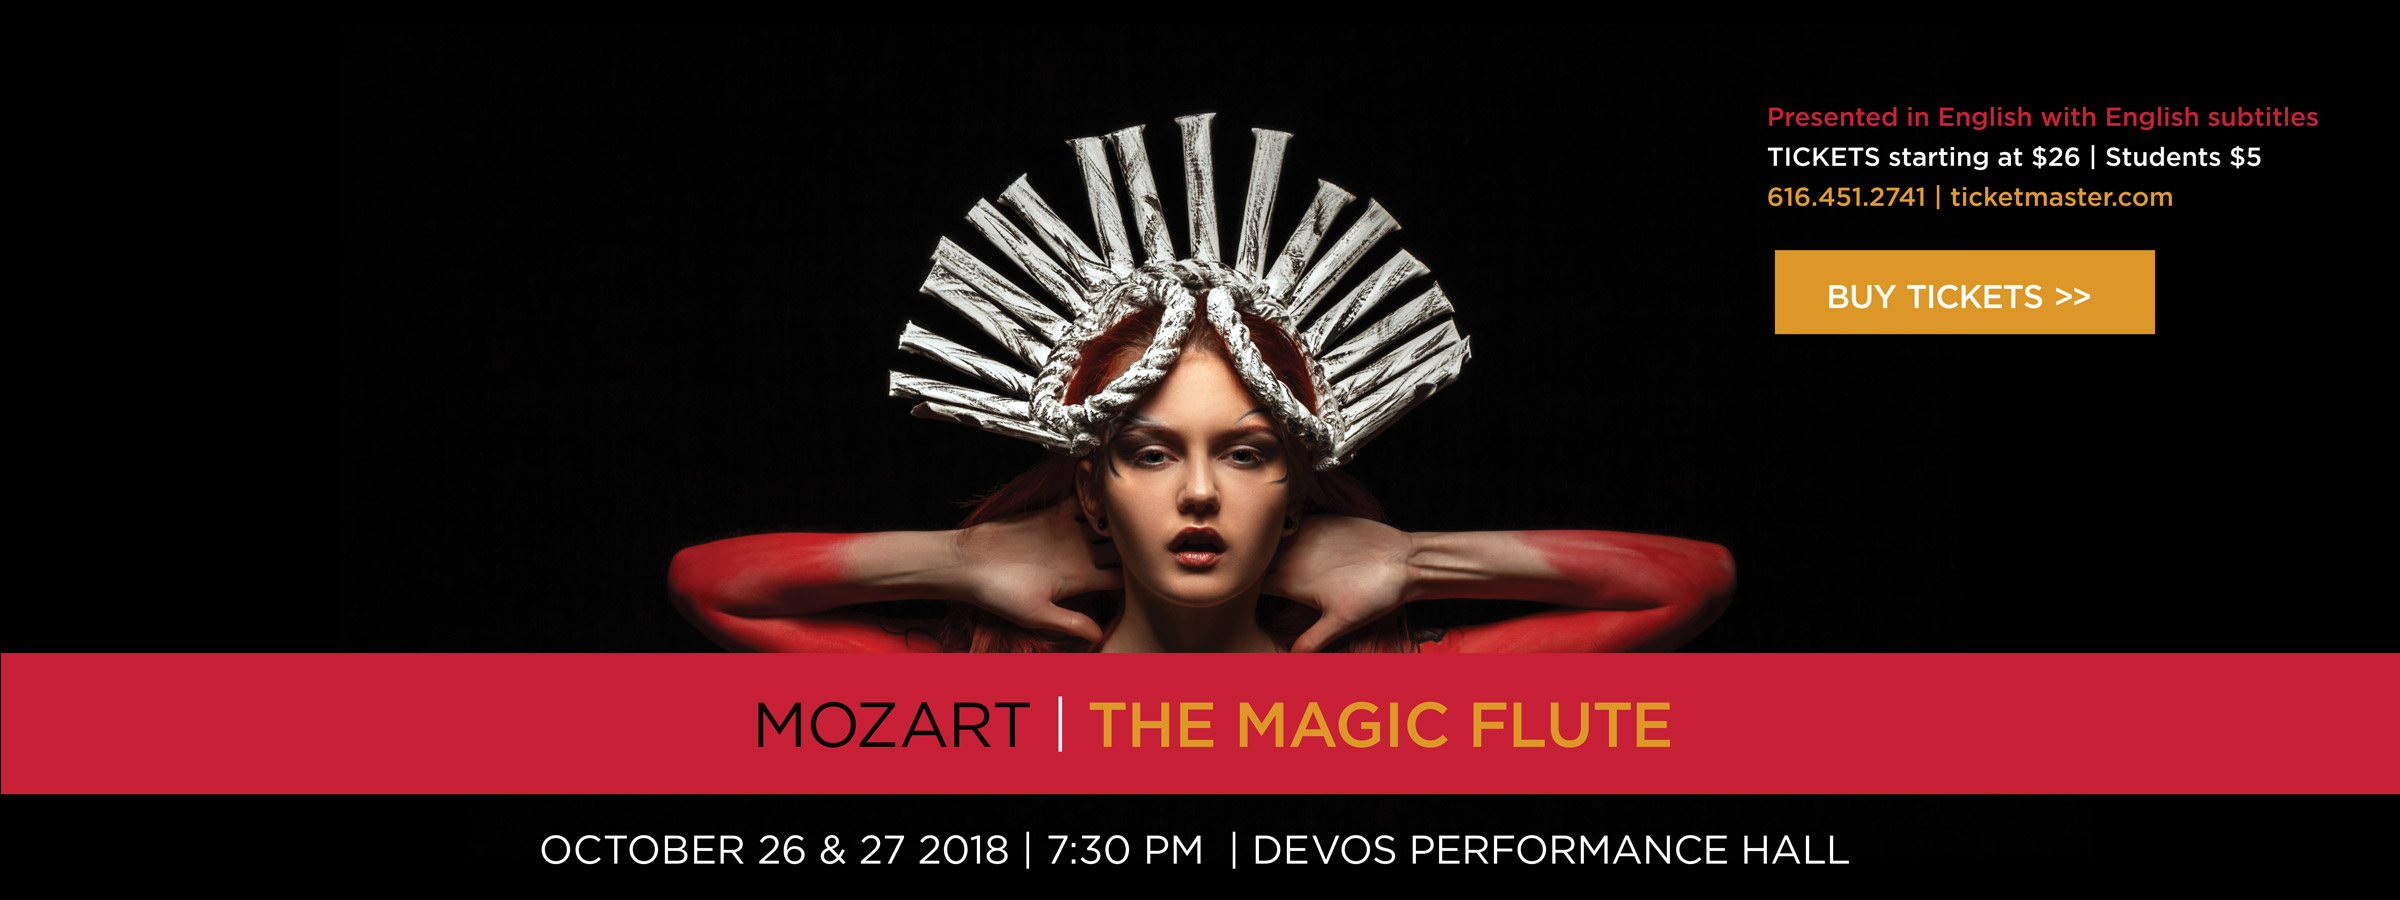 Buy tickets for Motzart's the Magic Flute October 26 & 27 at DeVos Performance Hall